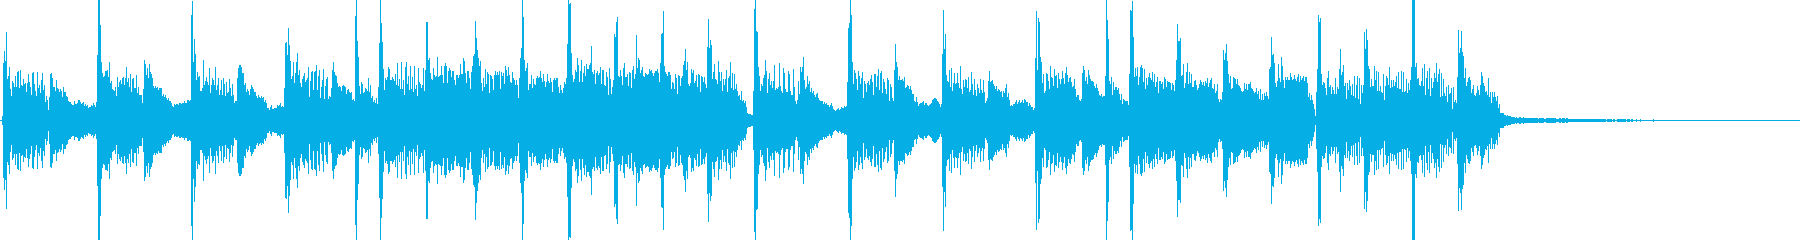 Jingle that makes the image of a small mischief's reproduced waveform